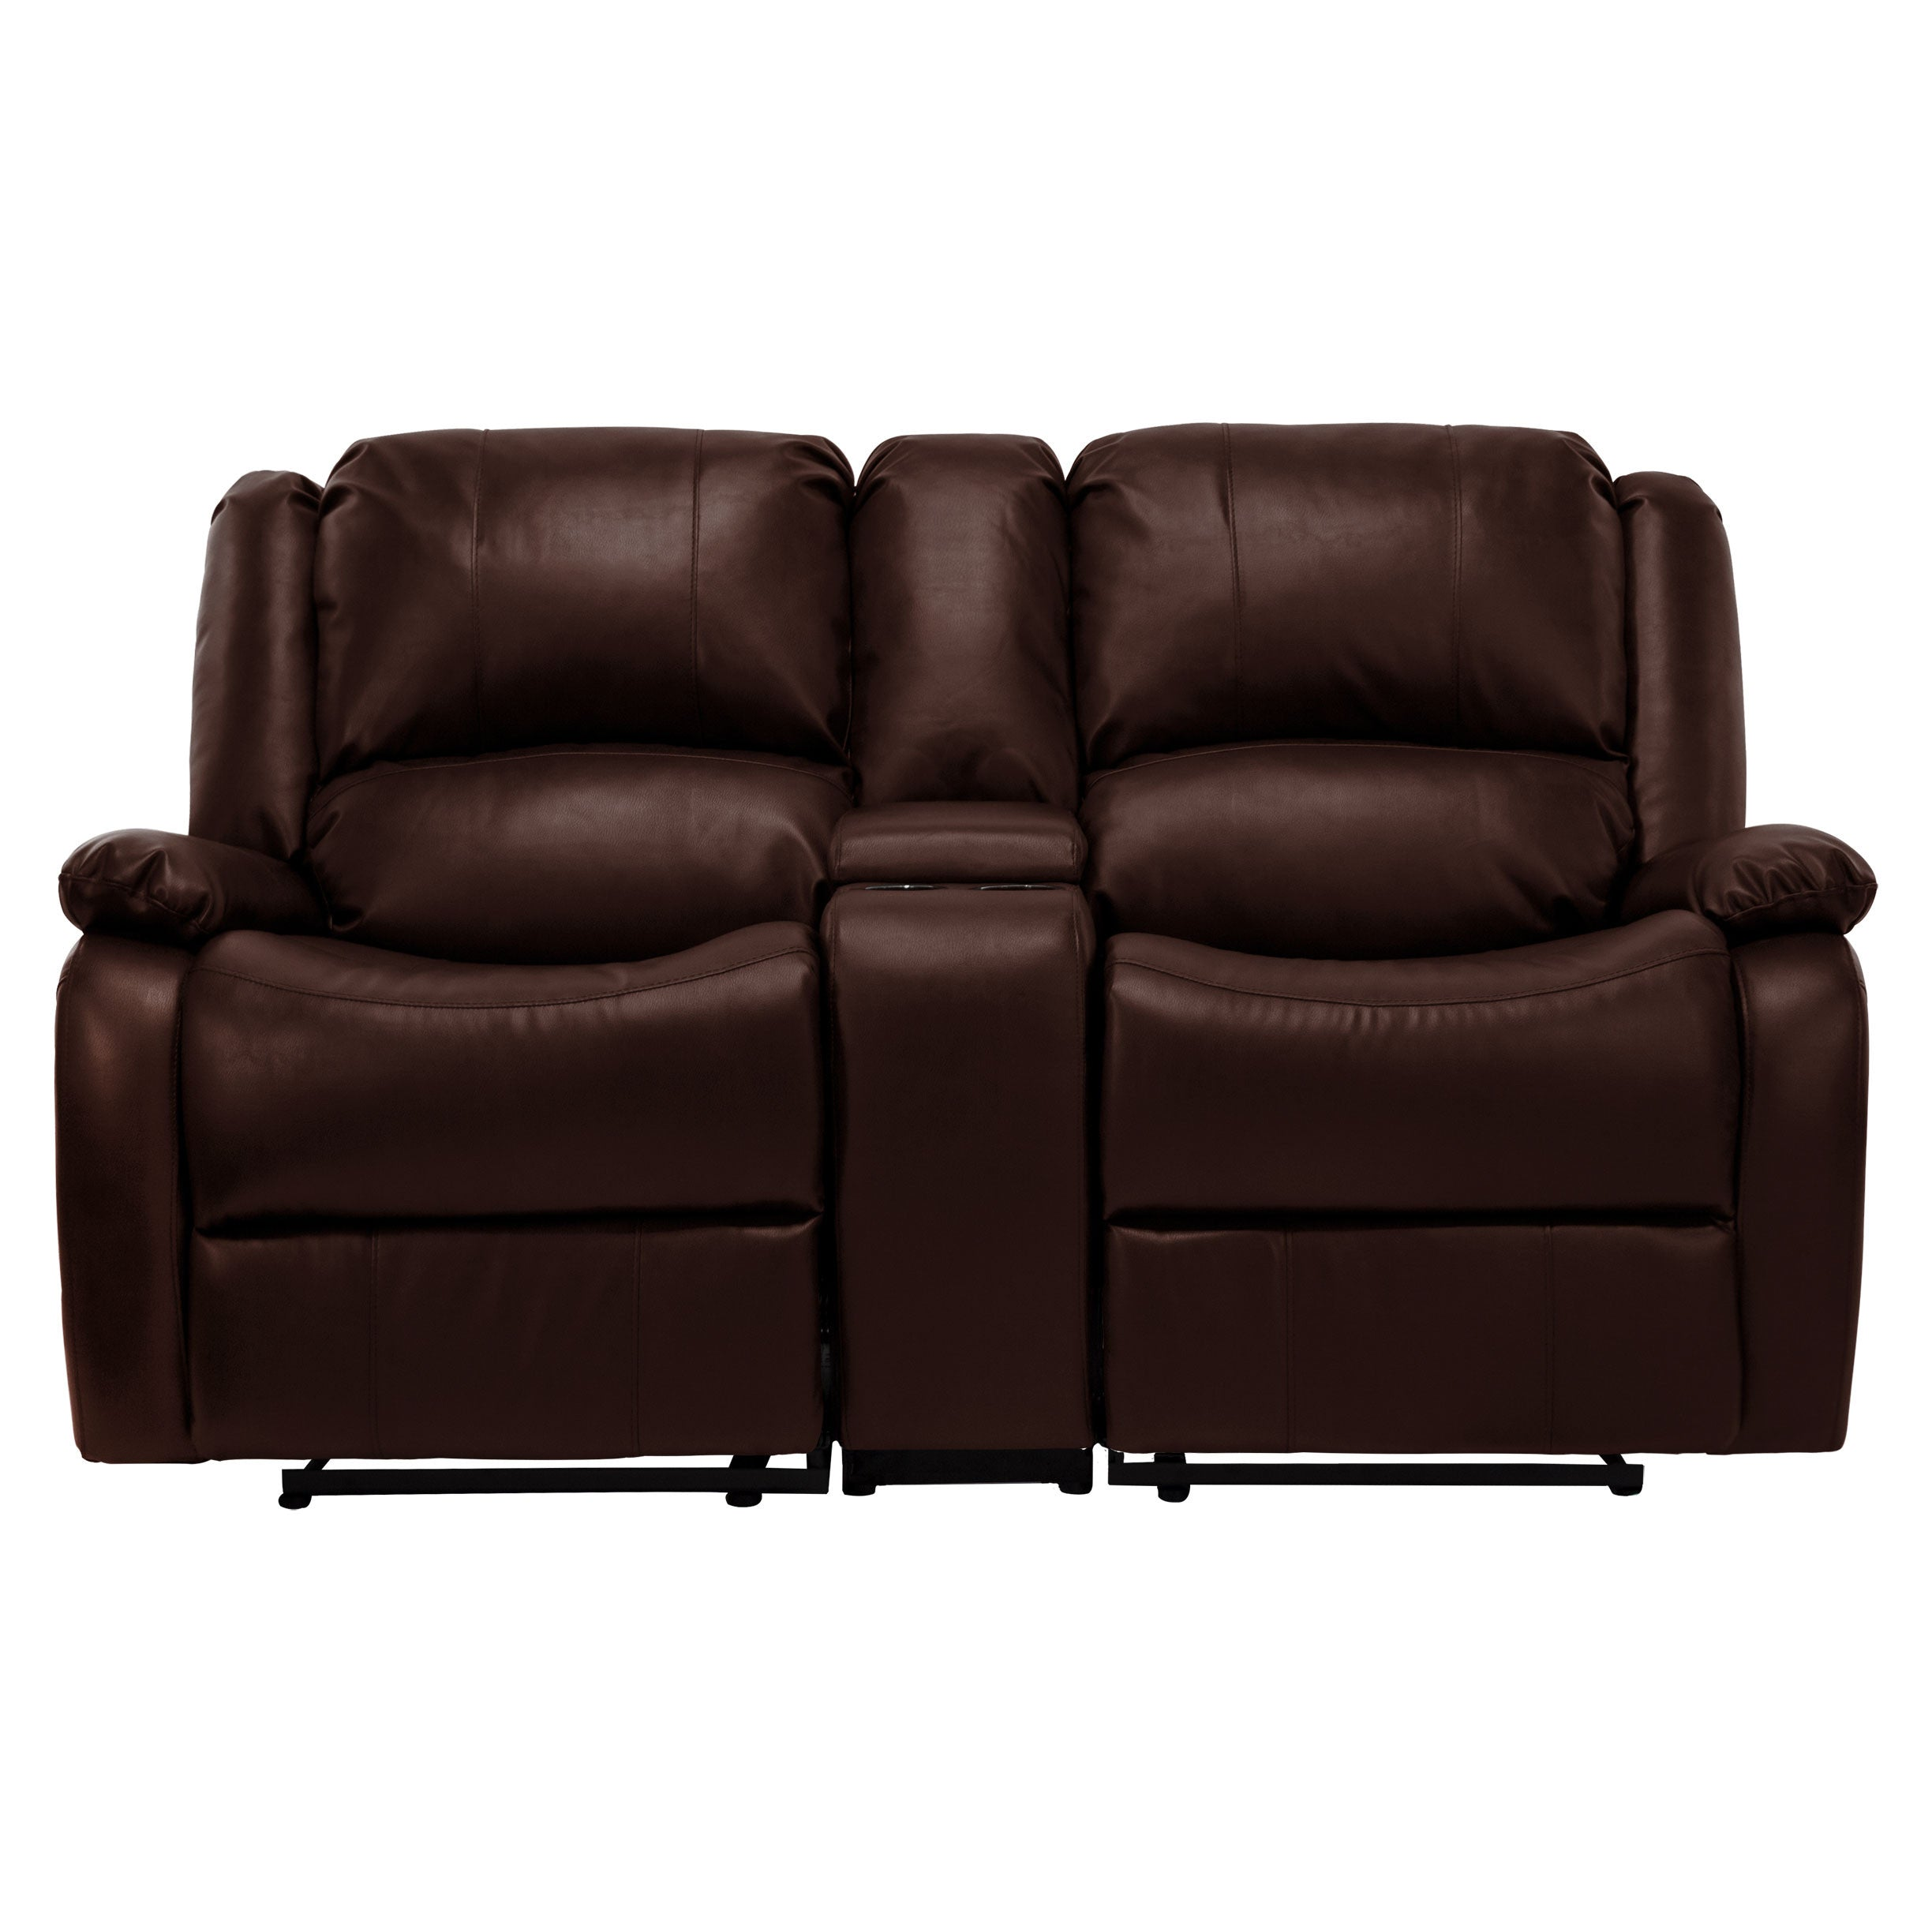 RecPro Charles 67  Double RV Zero Wall Hugger Recliner Sofa w/ Console Mahogany  sc 1 st  RecPro.com & RecPro Charles 67